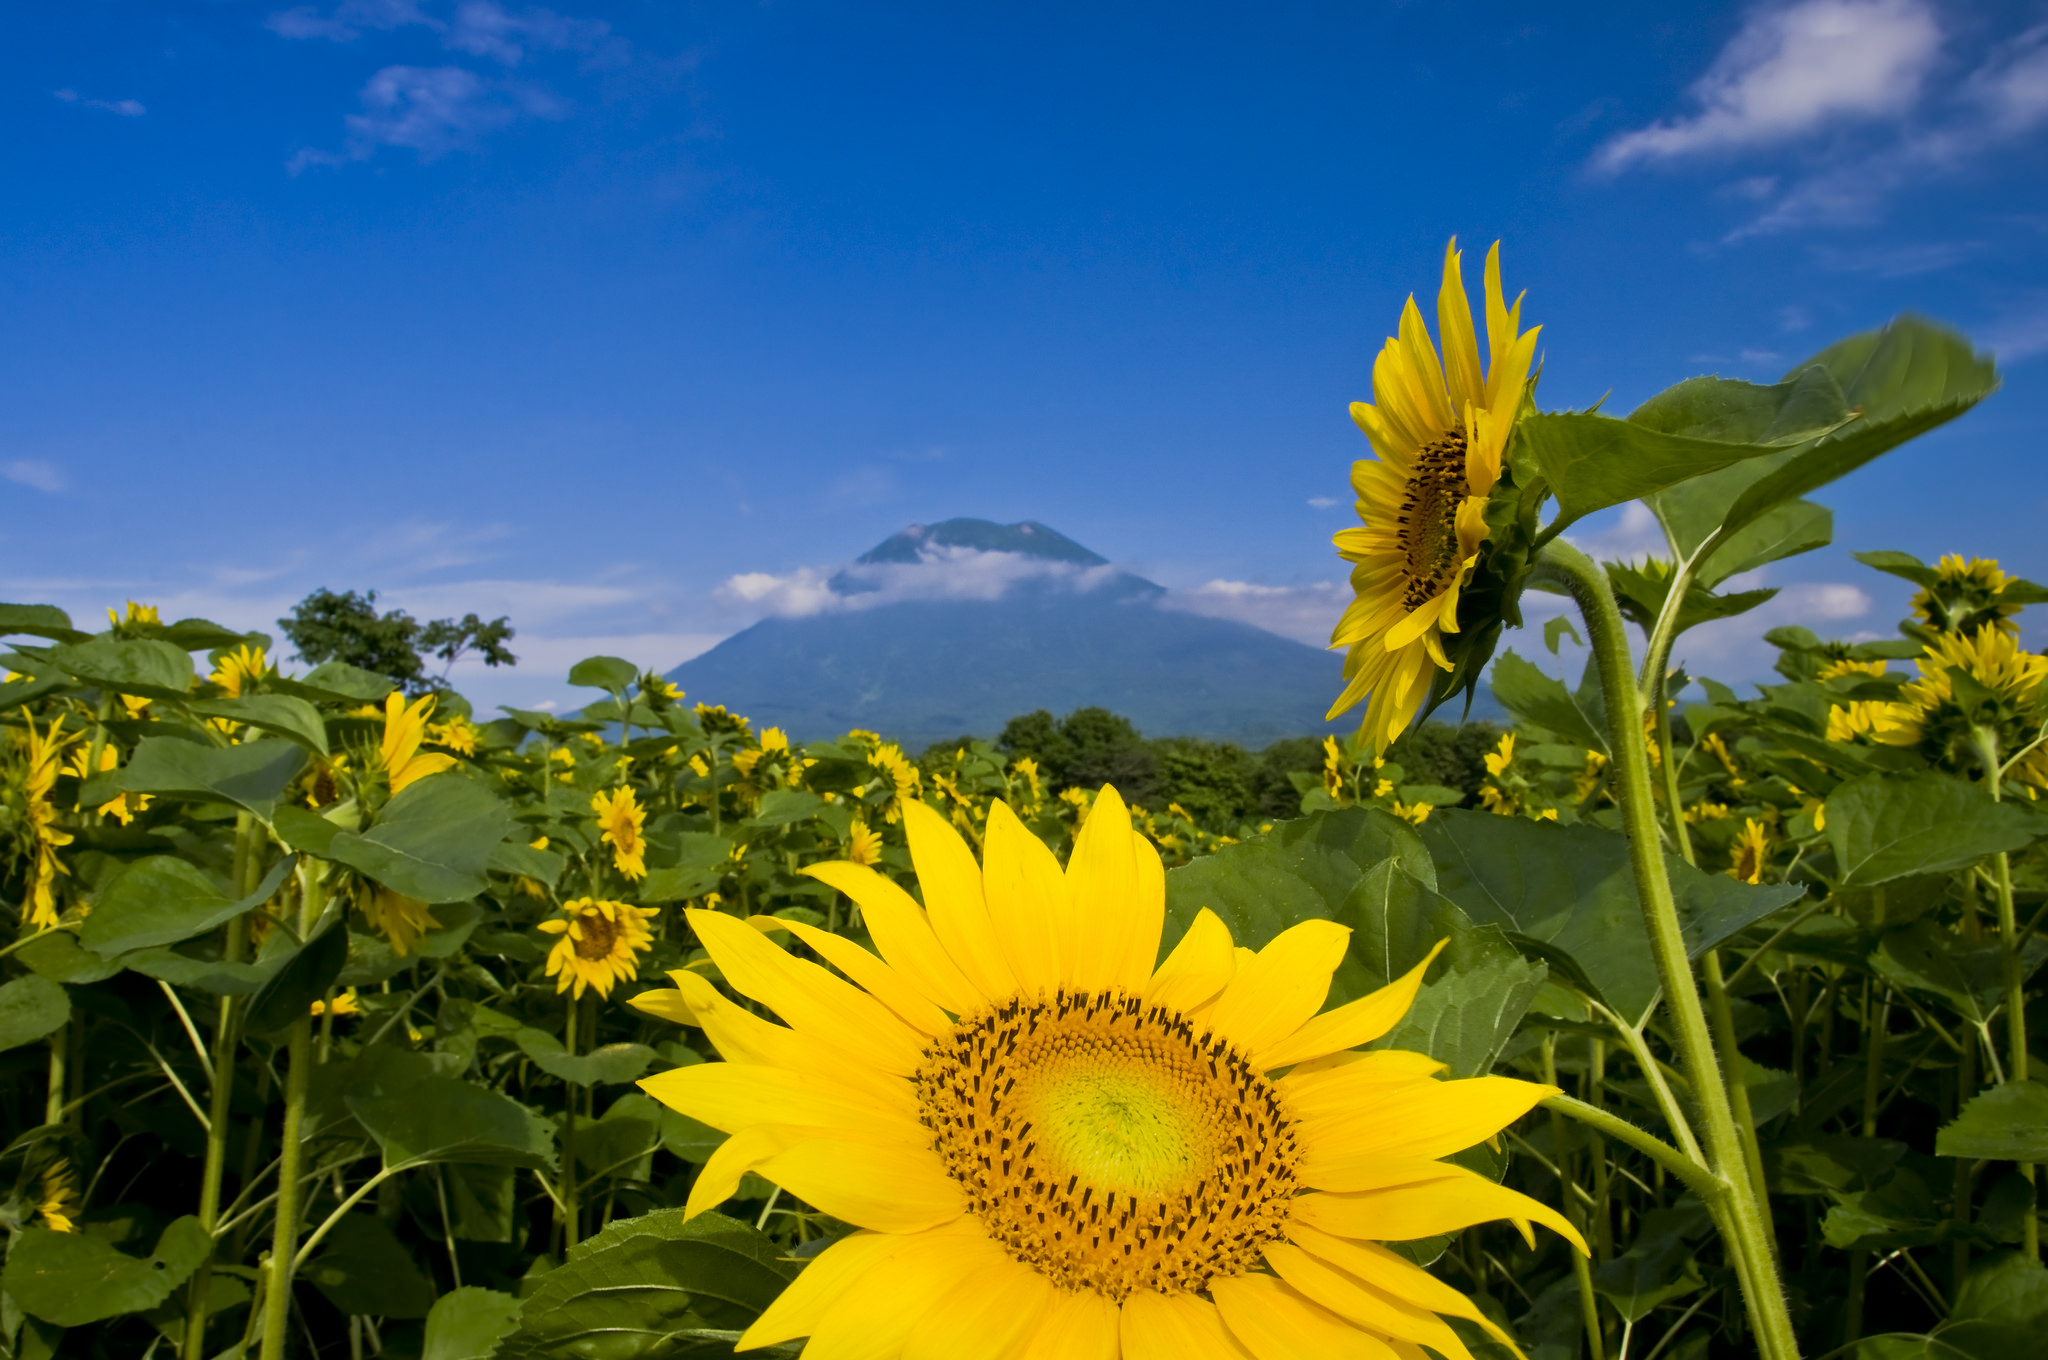 Sunflowers sit at the base of Yotei on a beautiful summer day